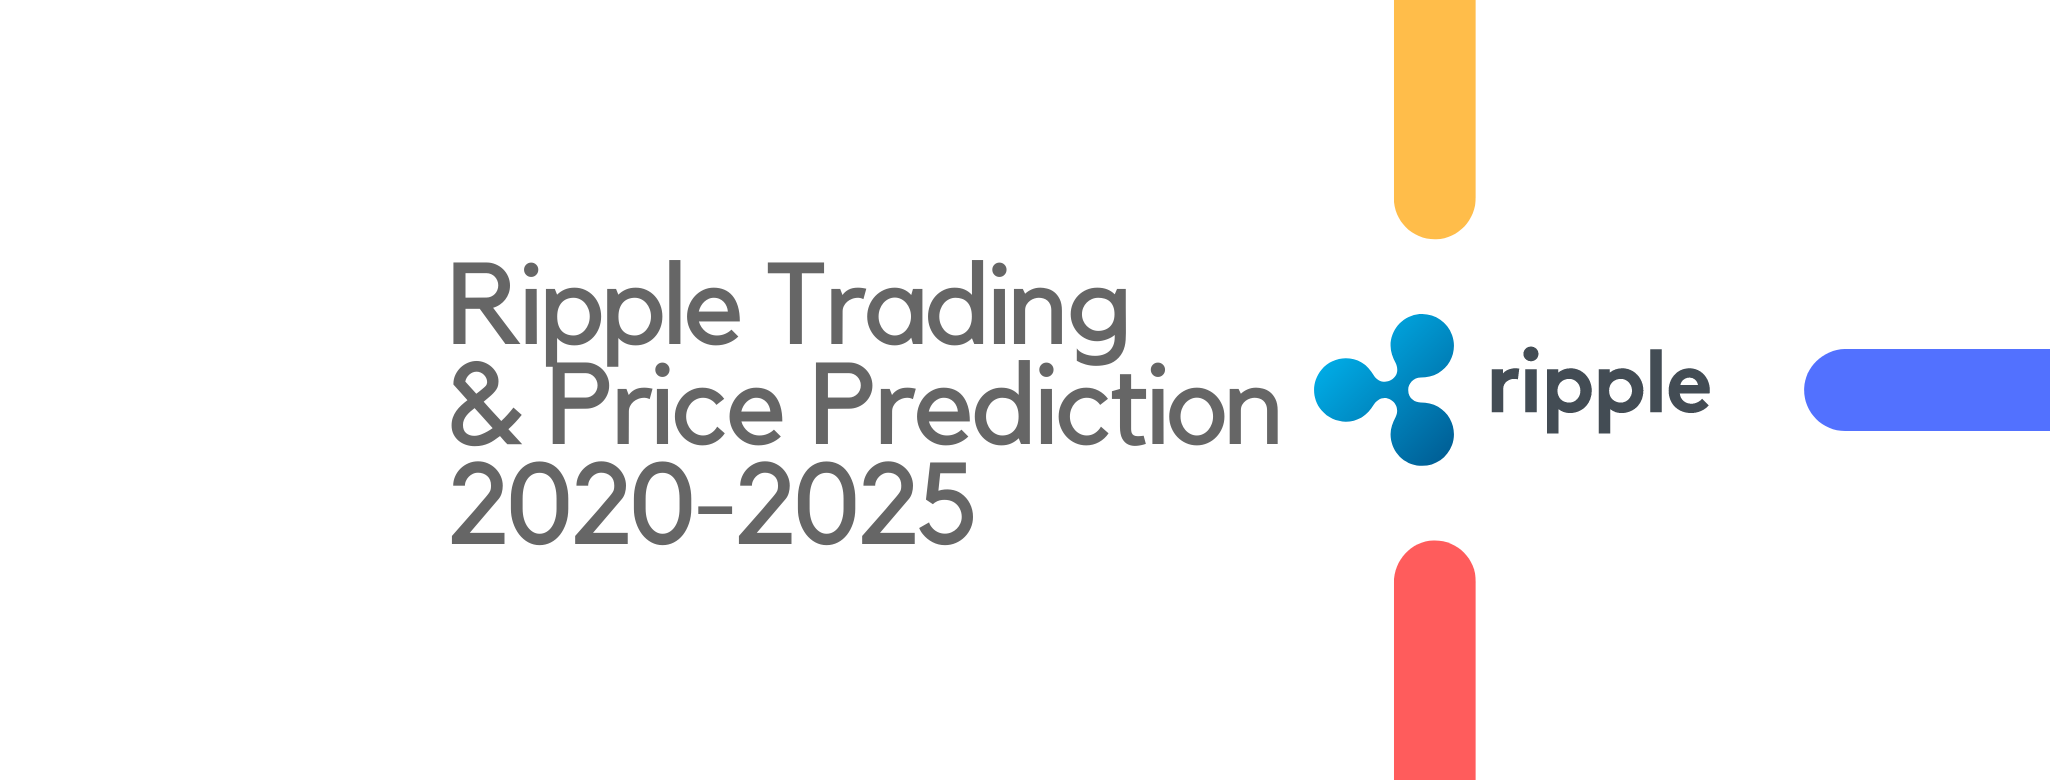 a beginners guide to ripple trading price prediction 2020 2025 news alarms a beginners guide to ripple trading